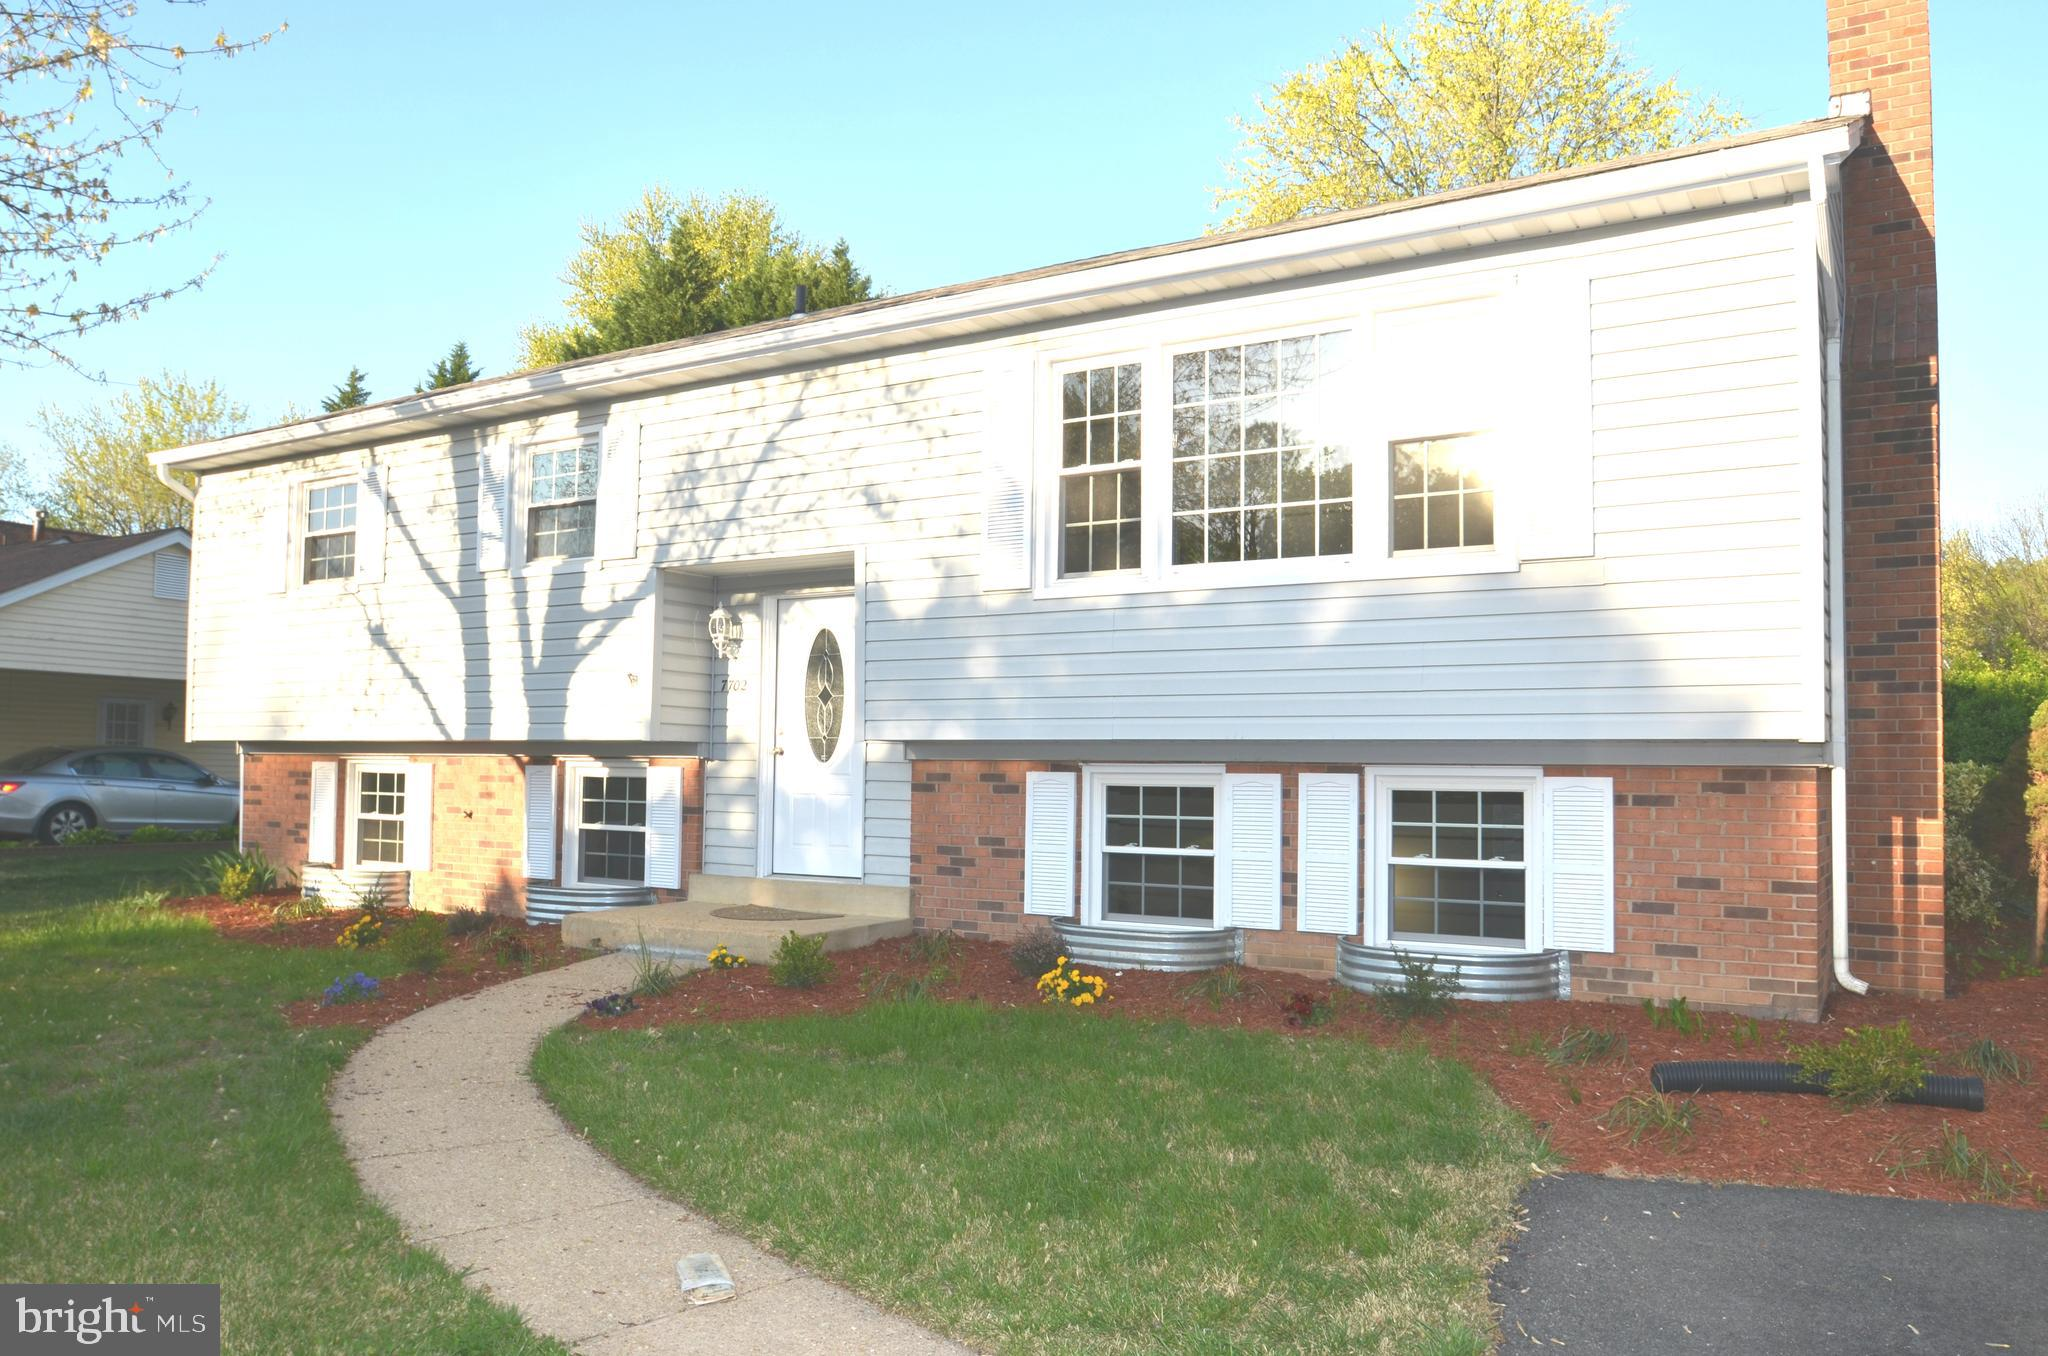 WONDERFUL 4BR HOME W/ BUMPOUTS IN HAYFIELD FARM..UPDATED KIT W/ GRANITE COUNTERS & S.S. APPL..RELAXING SUNROOM W/ WALKOUT TO DECK..HUGE REC RM W/ WOOD STOVE & SEP DEN..EXTRA ROOM FOR CRAFTS OR OFFICE..REFINISHED FLOORS..NEWER WINDOWS, DECK, ETC..CLOSE TO SHOPPING, K-12 WALK TO SCHOOLS..EASY ACCESS TO SHOPPING, FT. BELVOIR, BELTWAY & OLD TOWN....AVAIL 7 JUNE